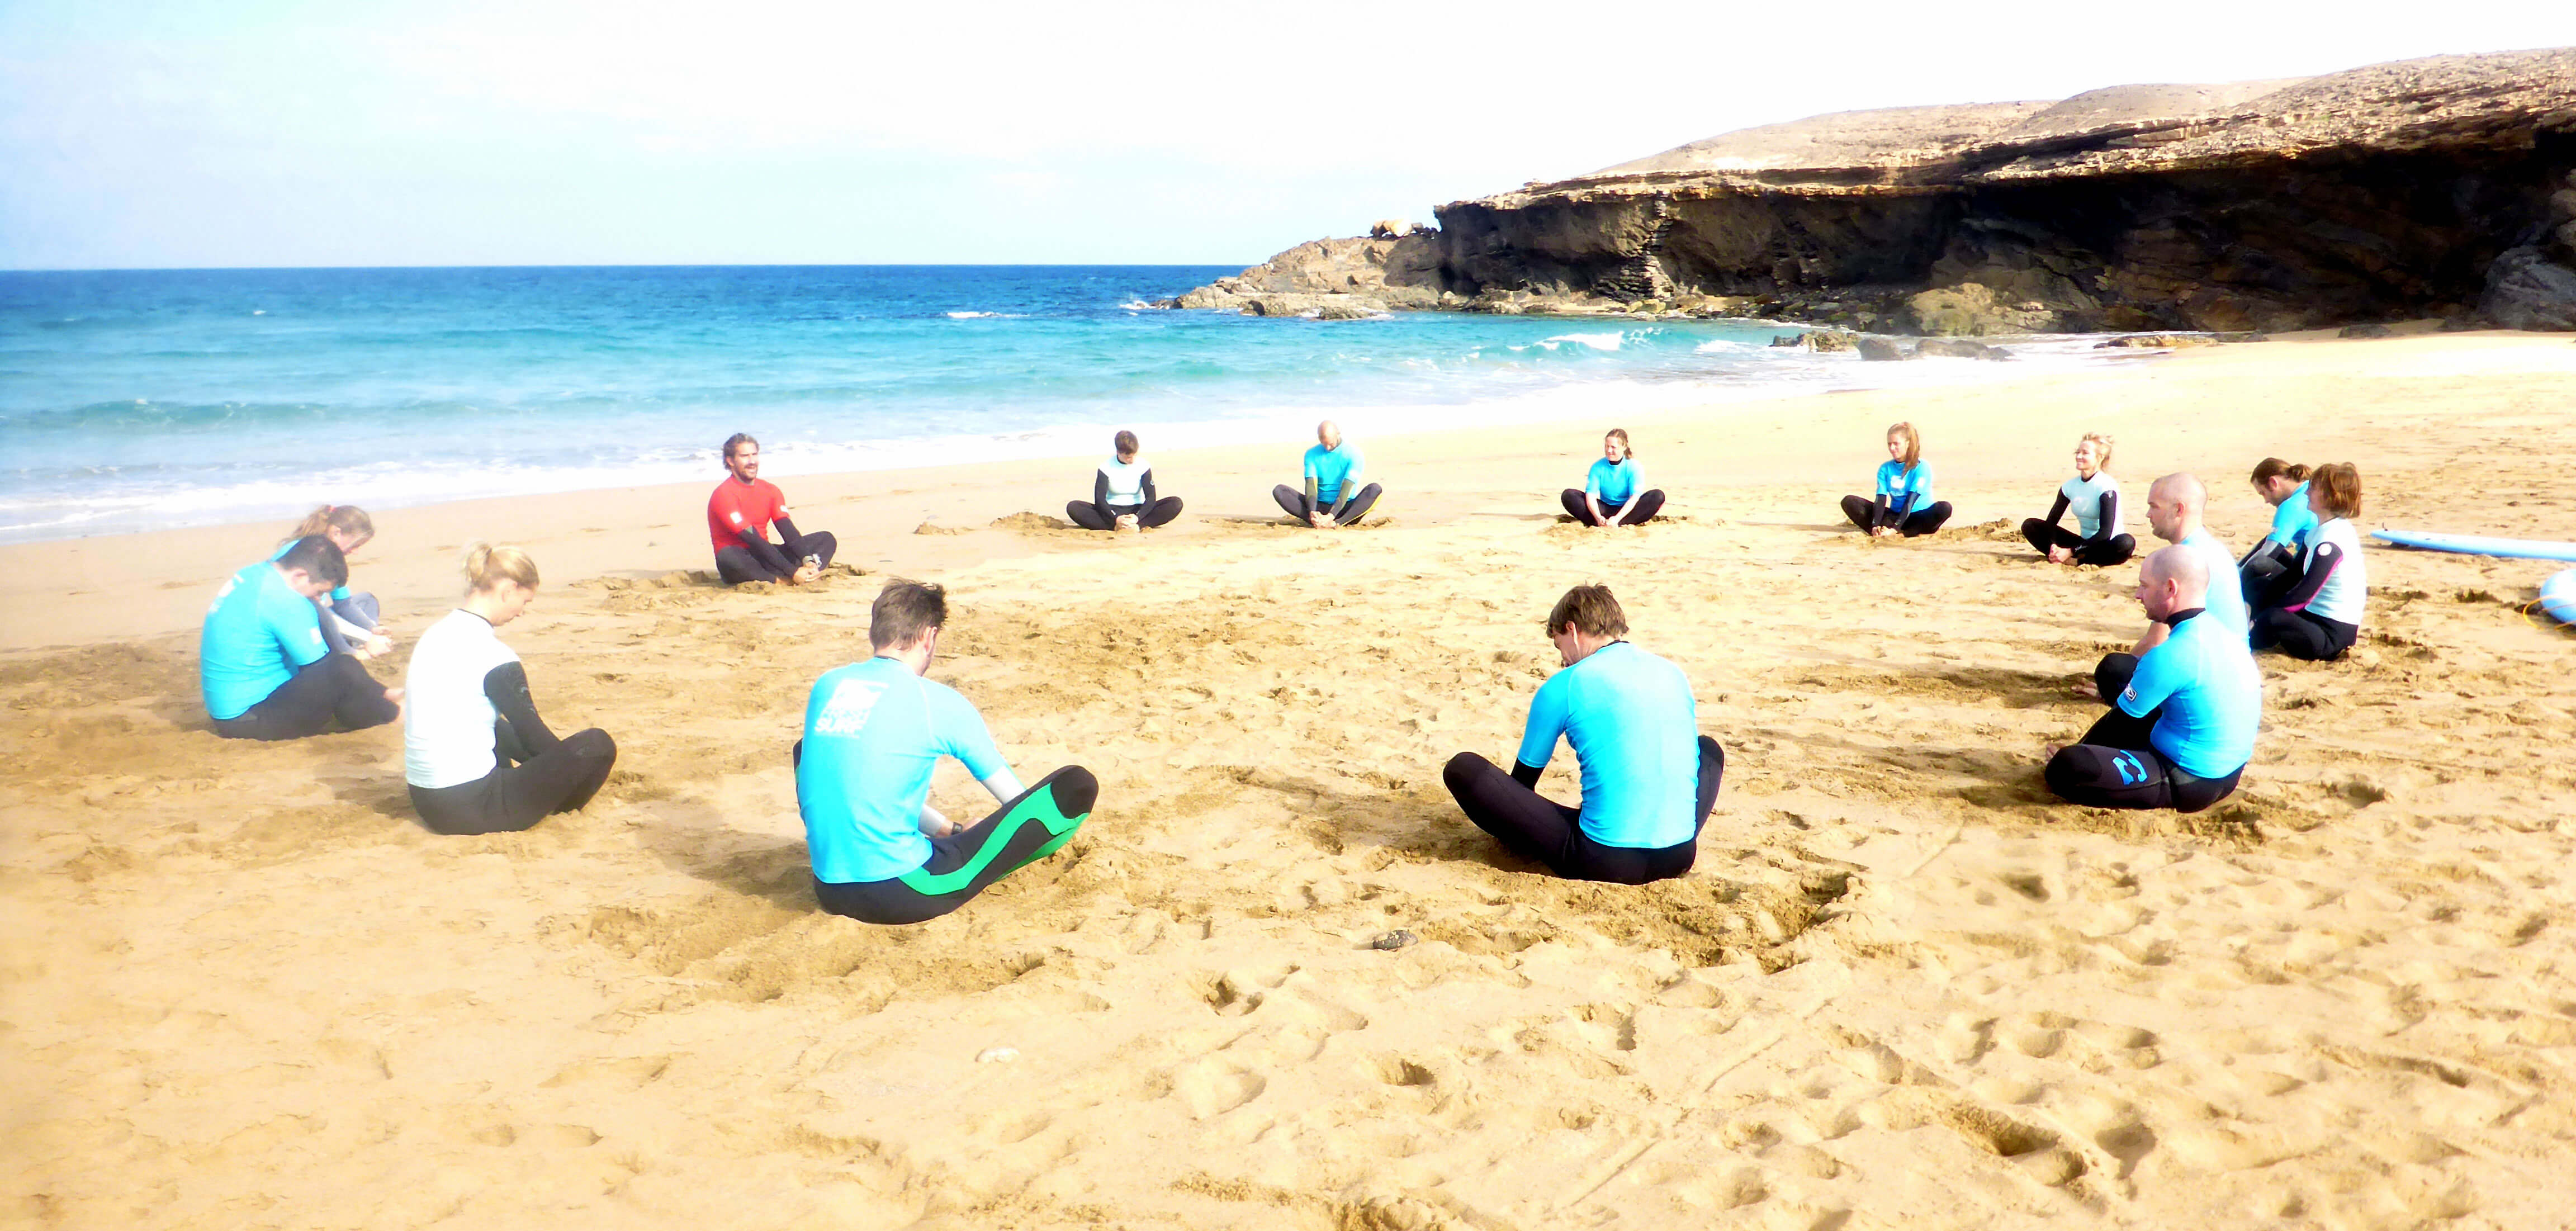 Escaping the European Winter – surfing in December on Fuerteventura. Our surf lessons on 29 of December 2014